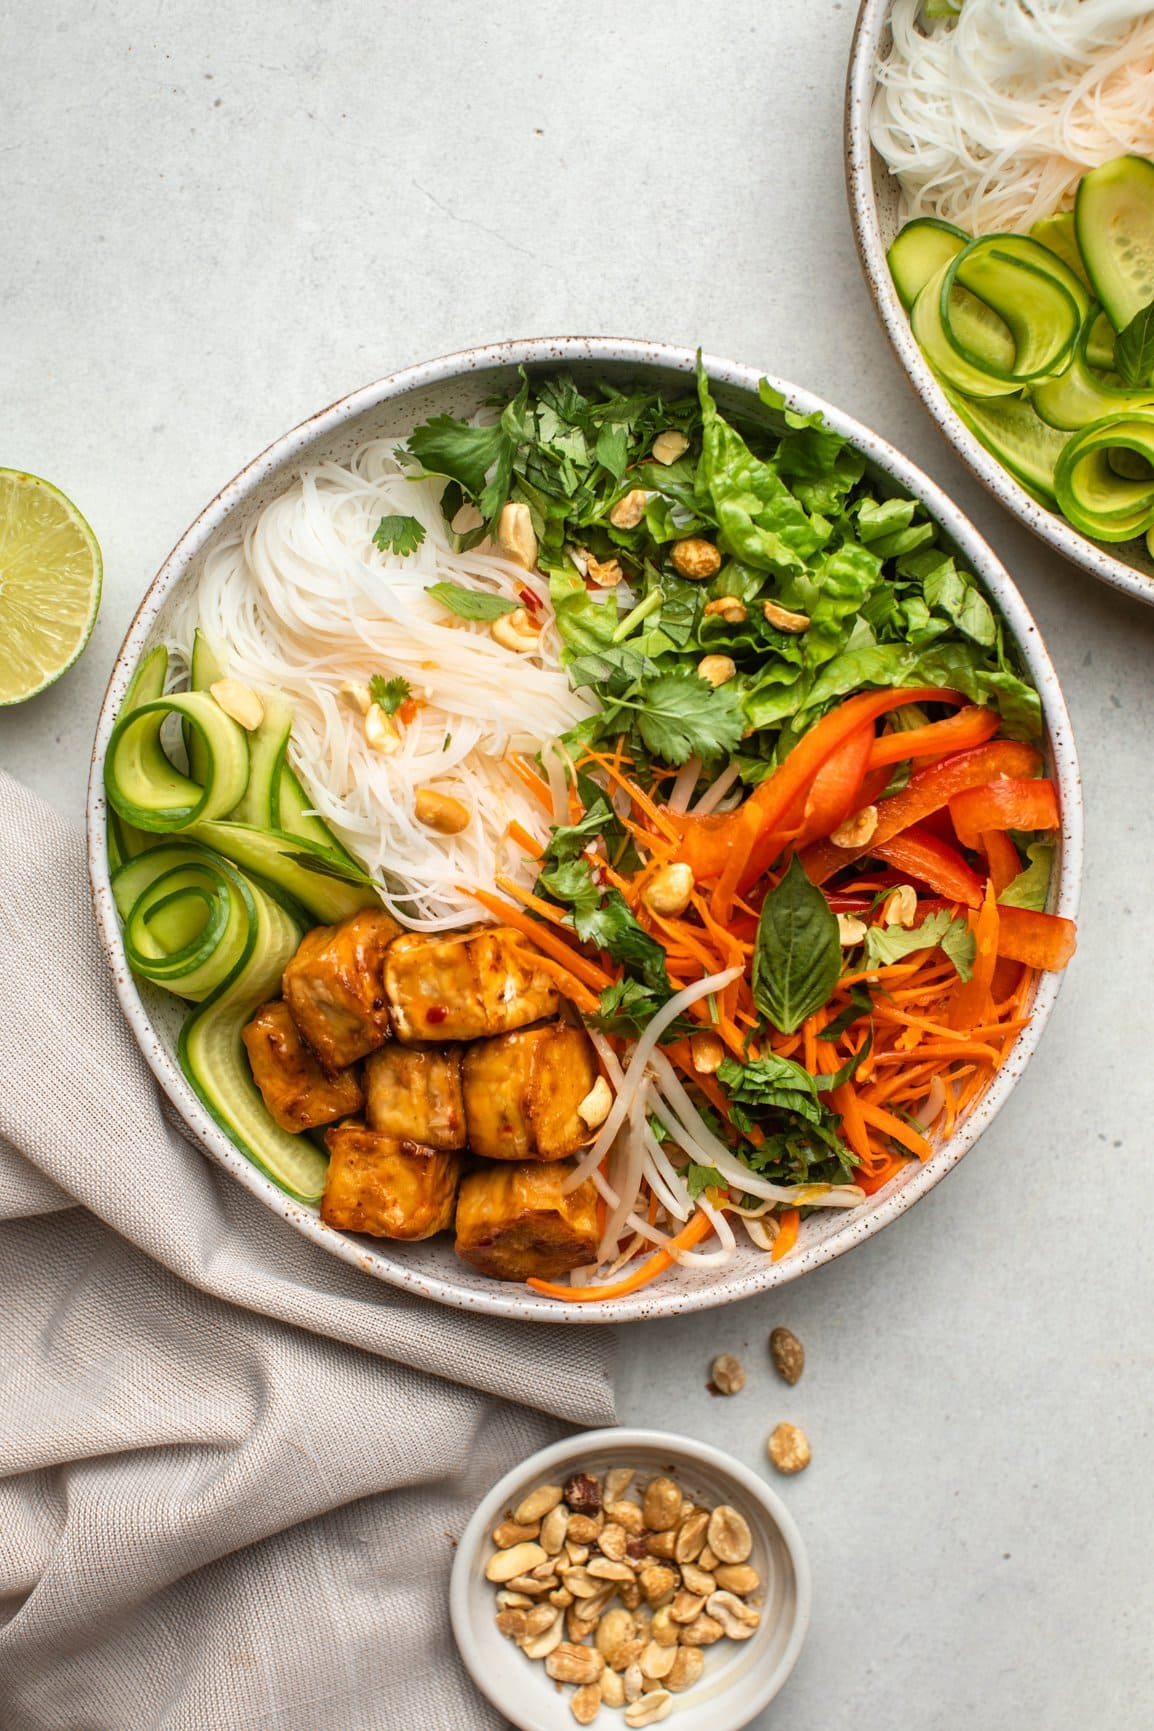 vermicelli noodle bowl with fresh lime and peanuts in small bowls on the side